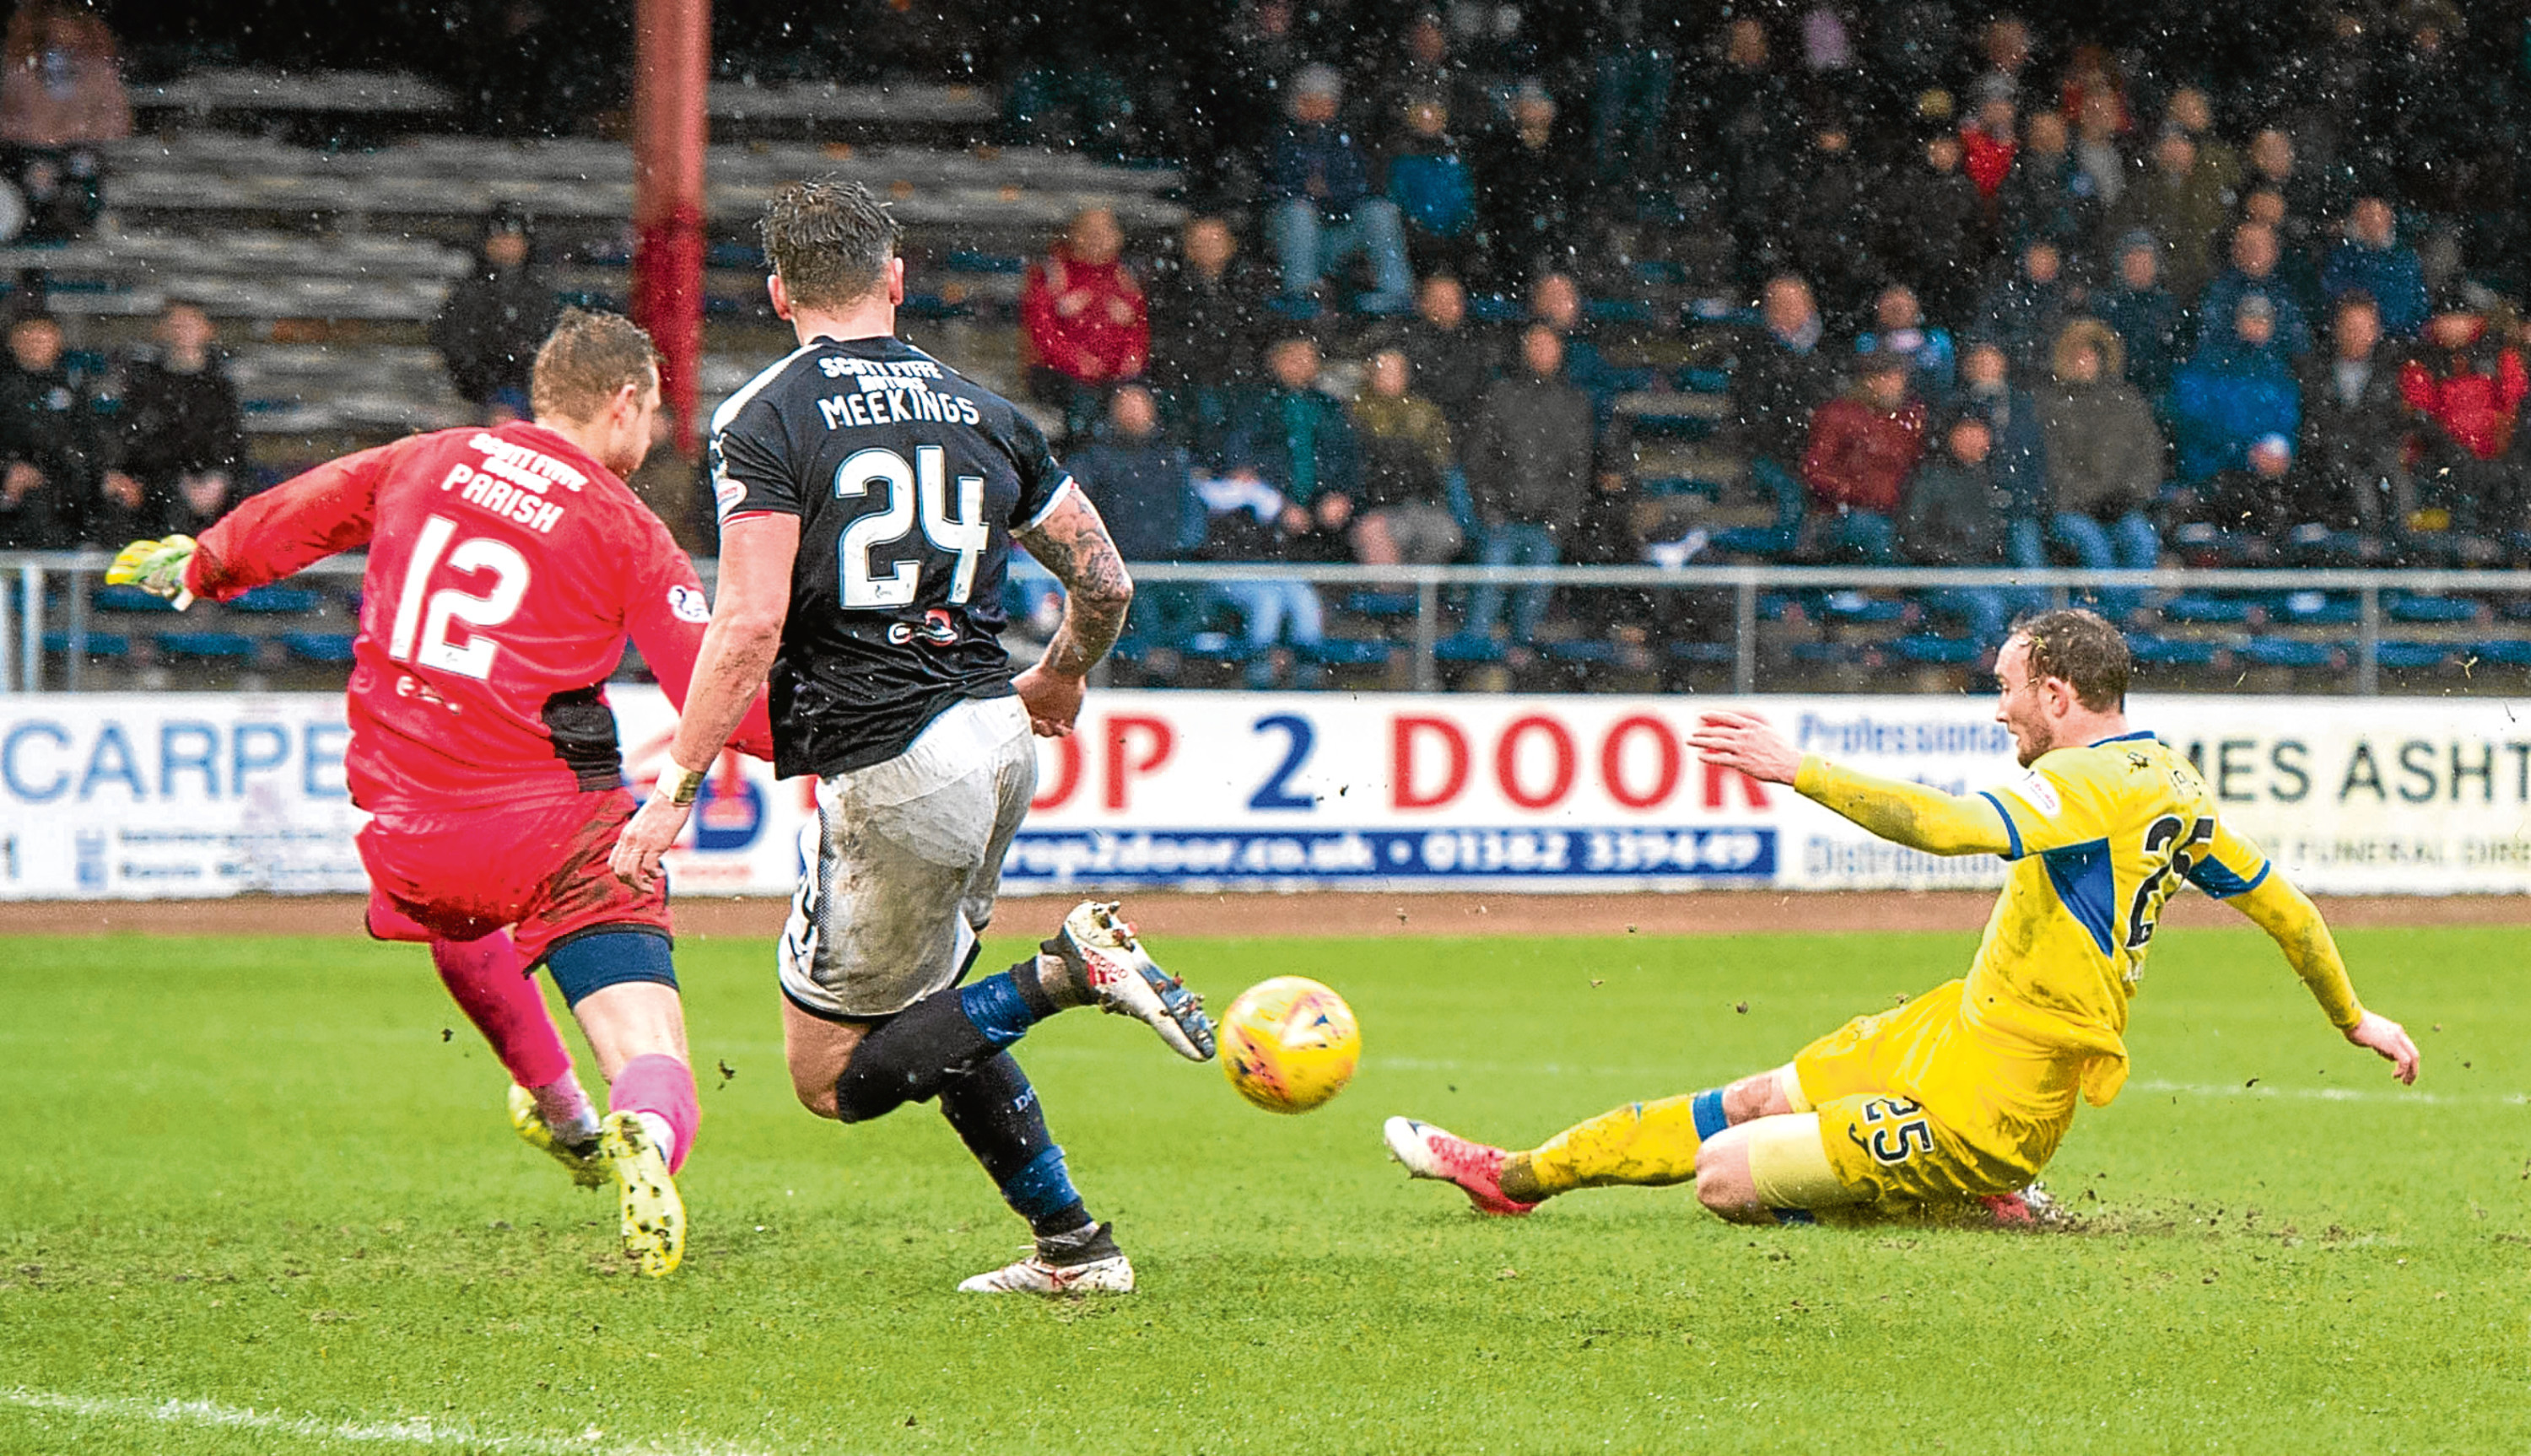 St Johnstone's Chris Kane scores to make it 4-0 when the teams met last month